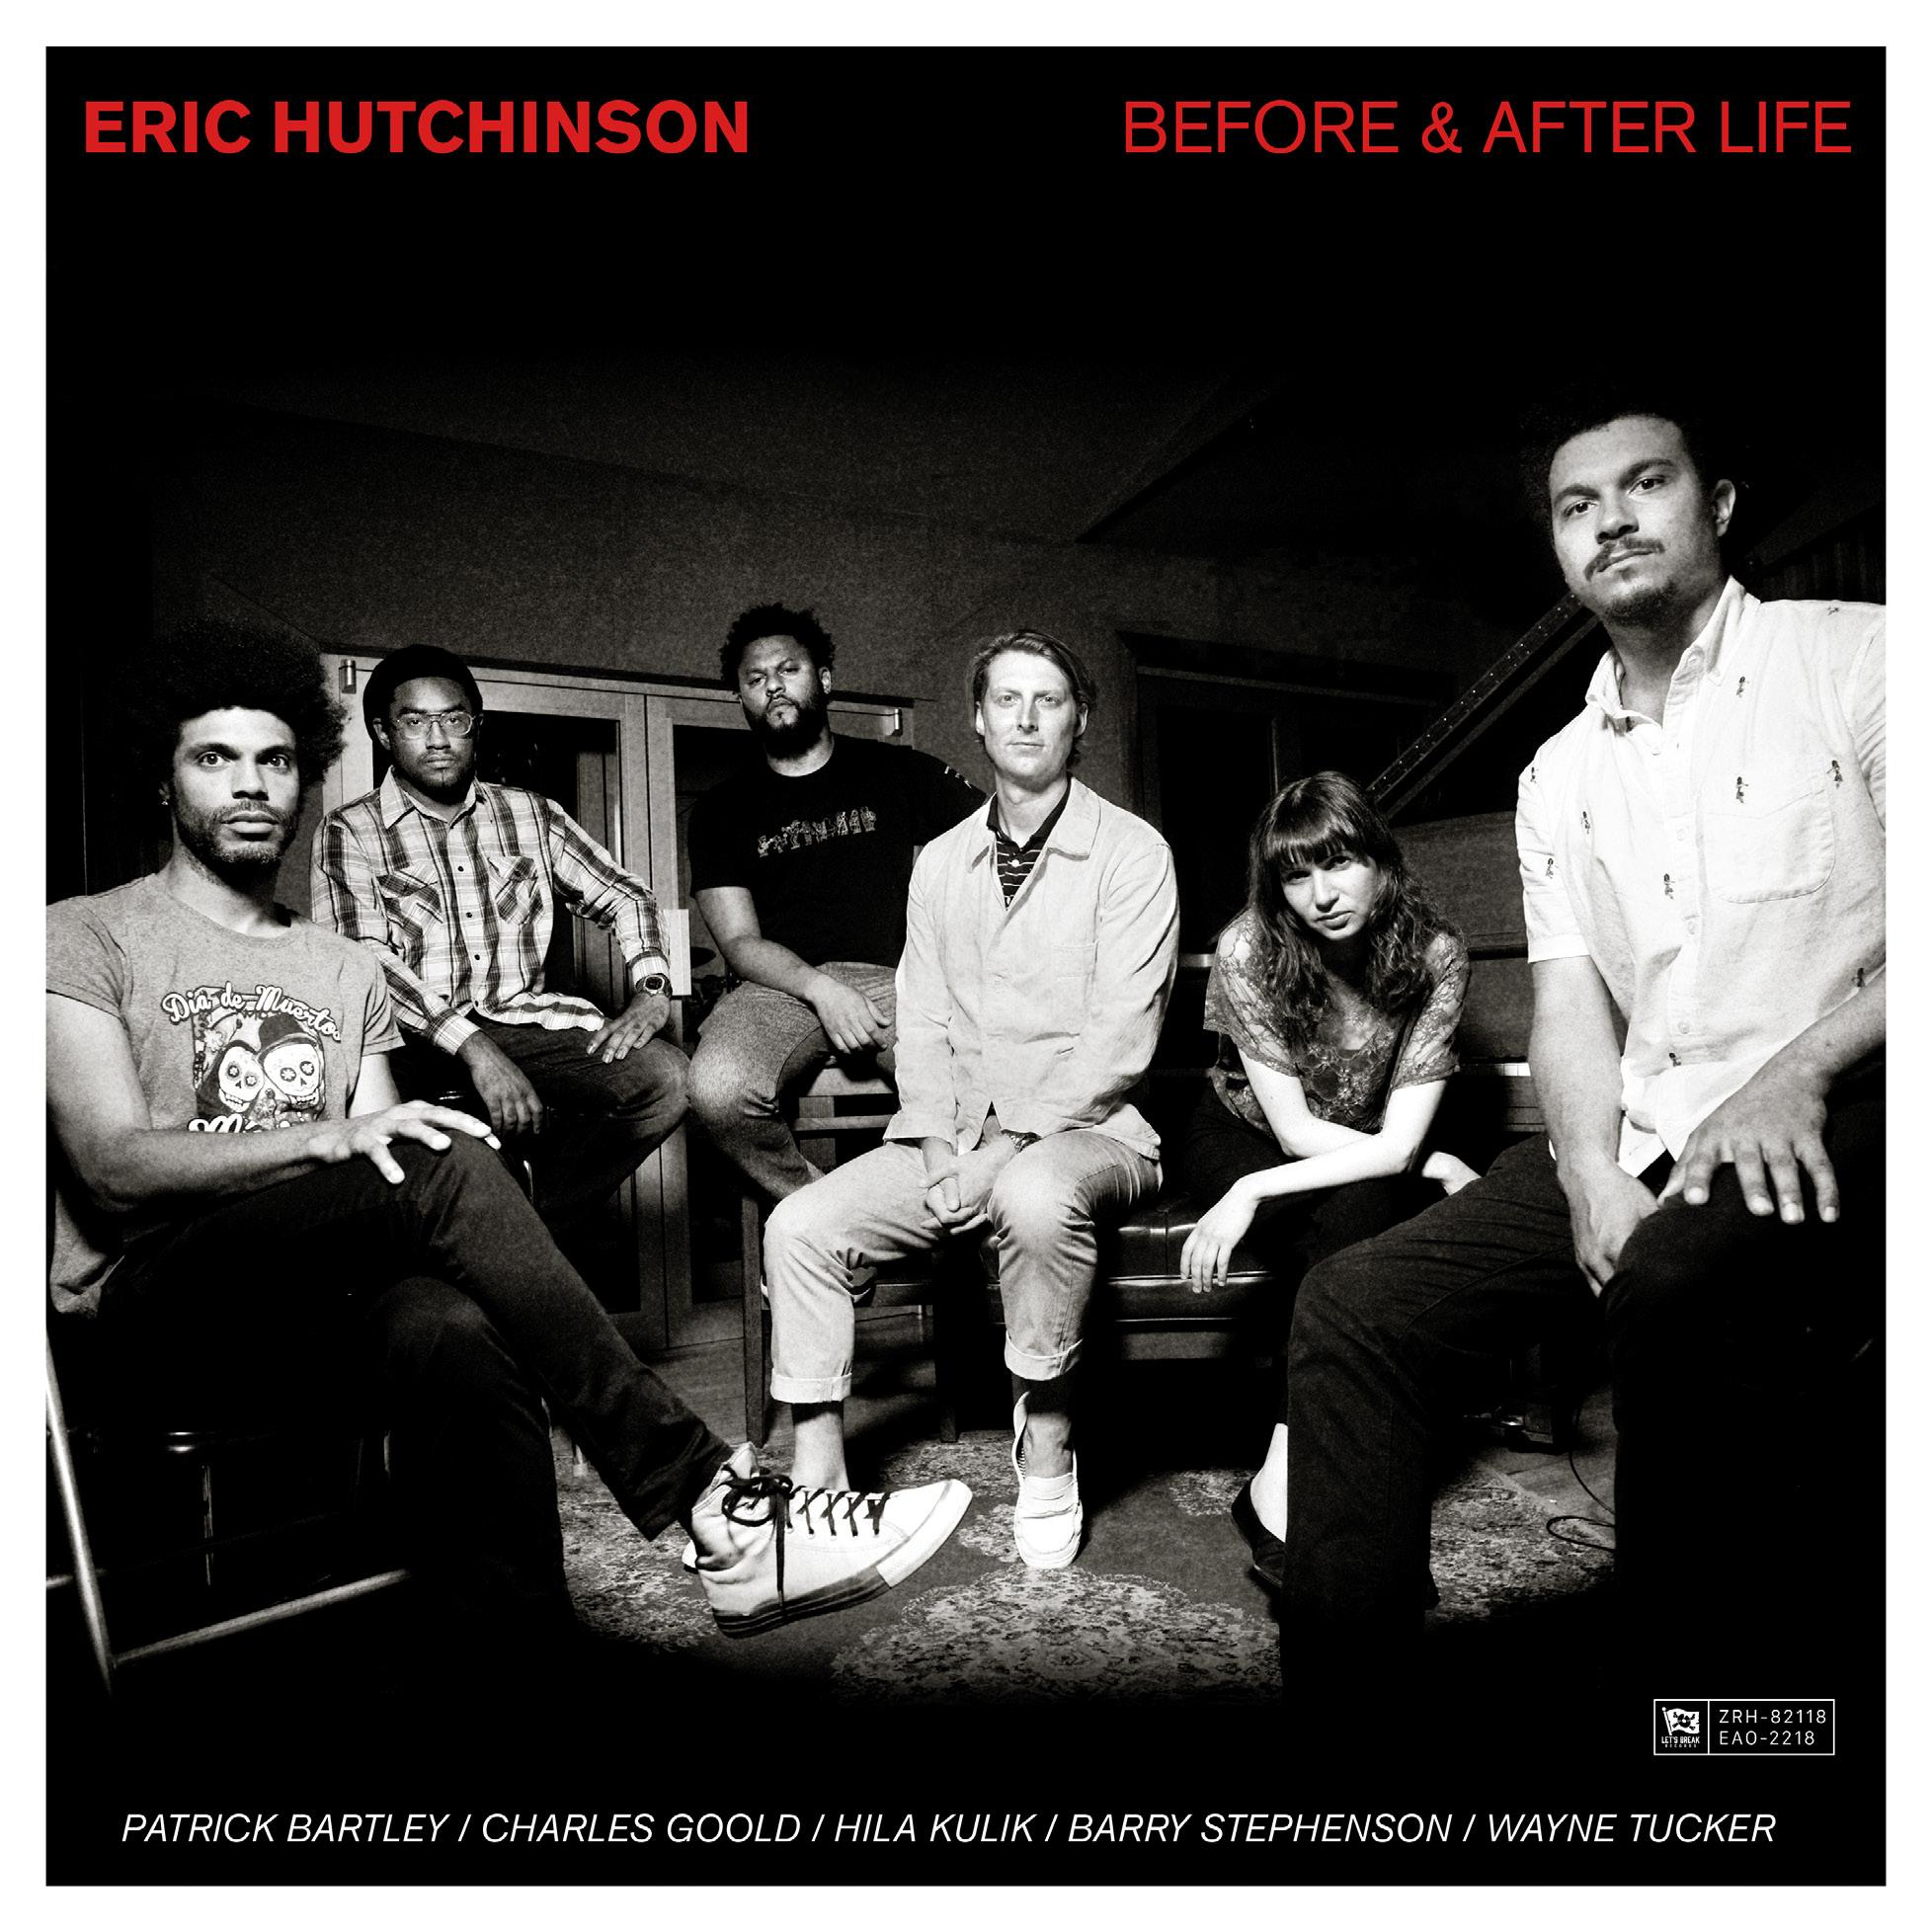 Page 20 of Eric Hutchinson: A musical look at the before and after